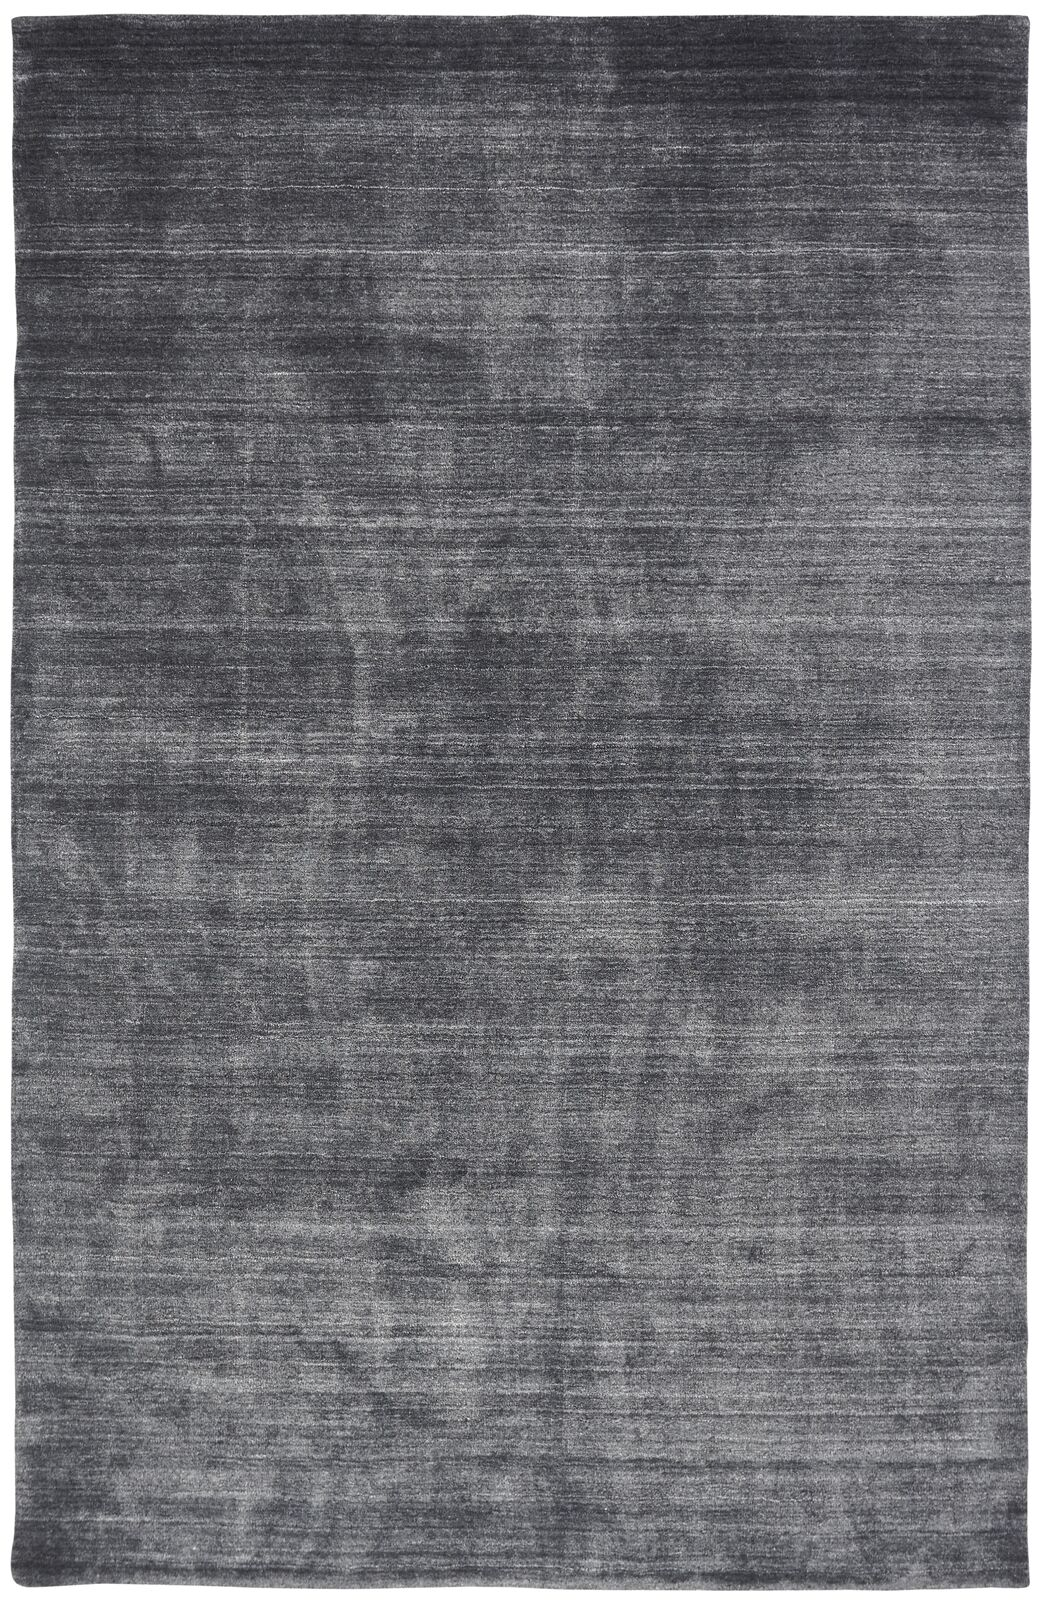 Dona Hand-Woven Area Rug Rug Size: Runner 2'6